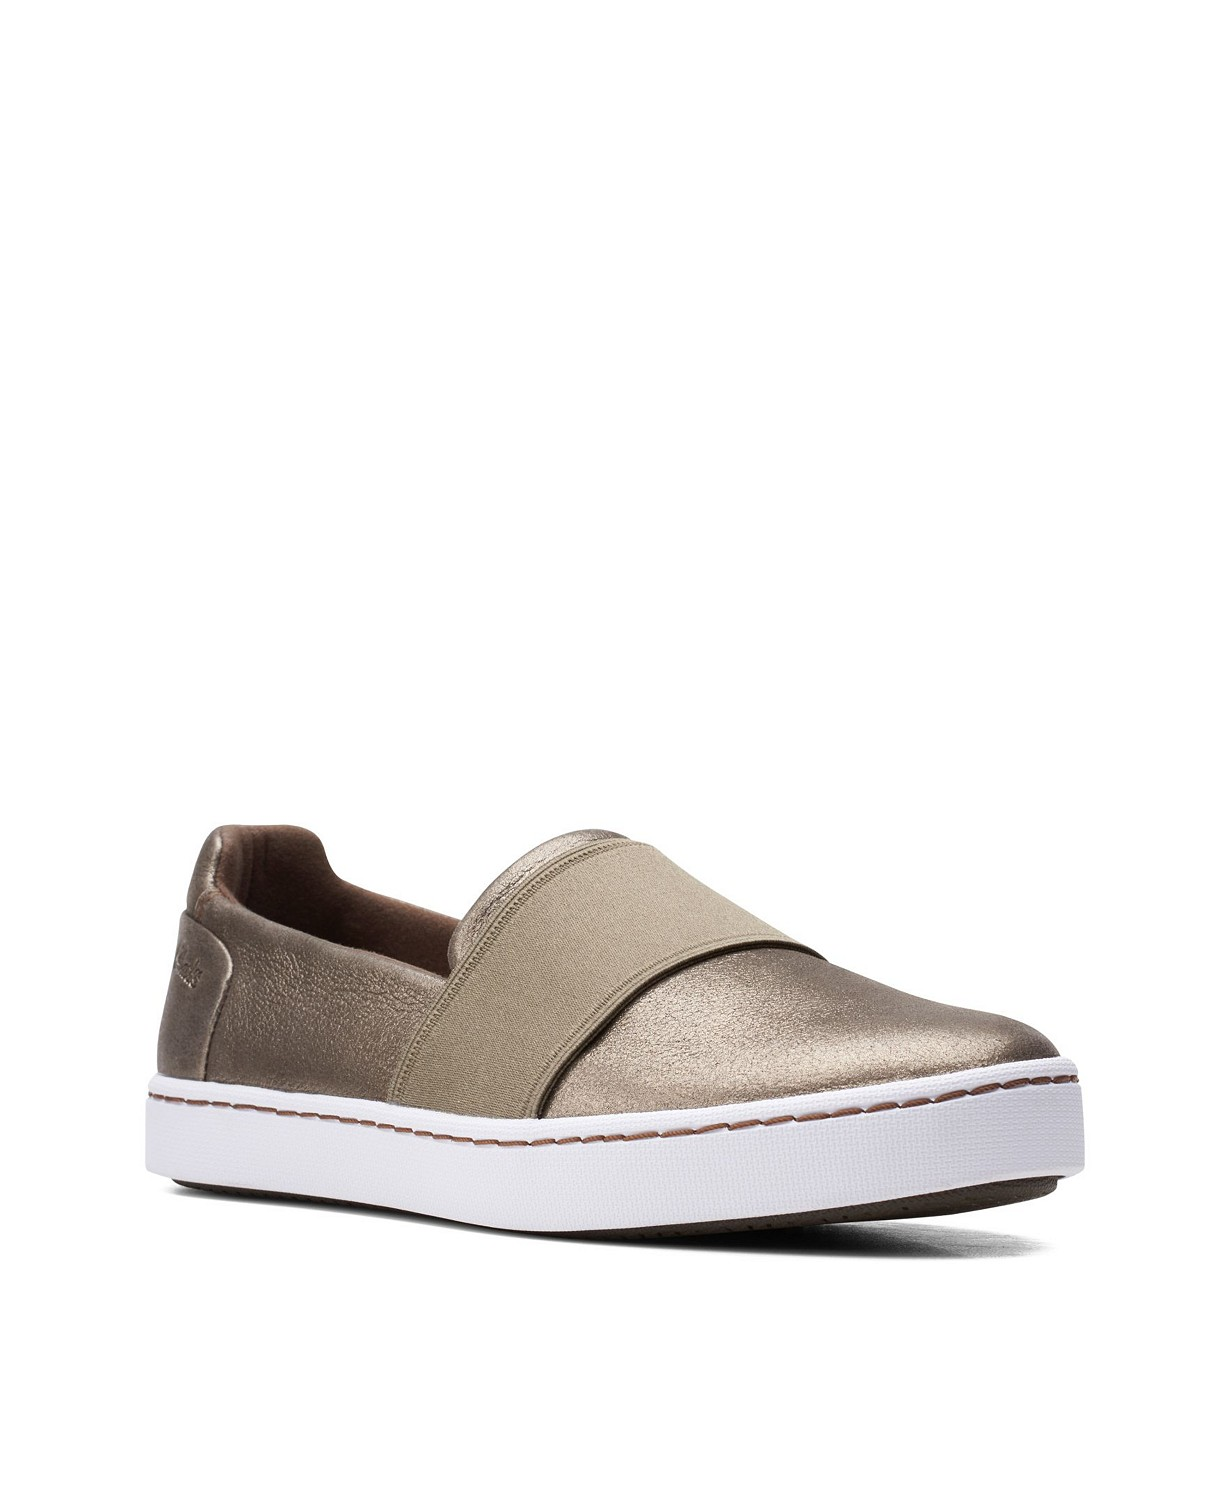 Clarks Pawley Wes Sneakers